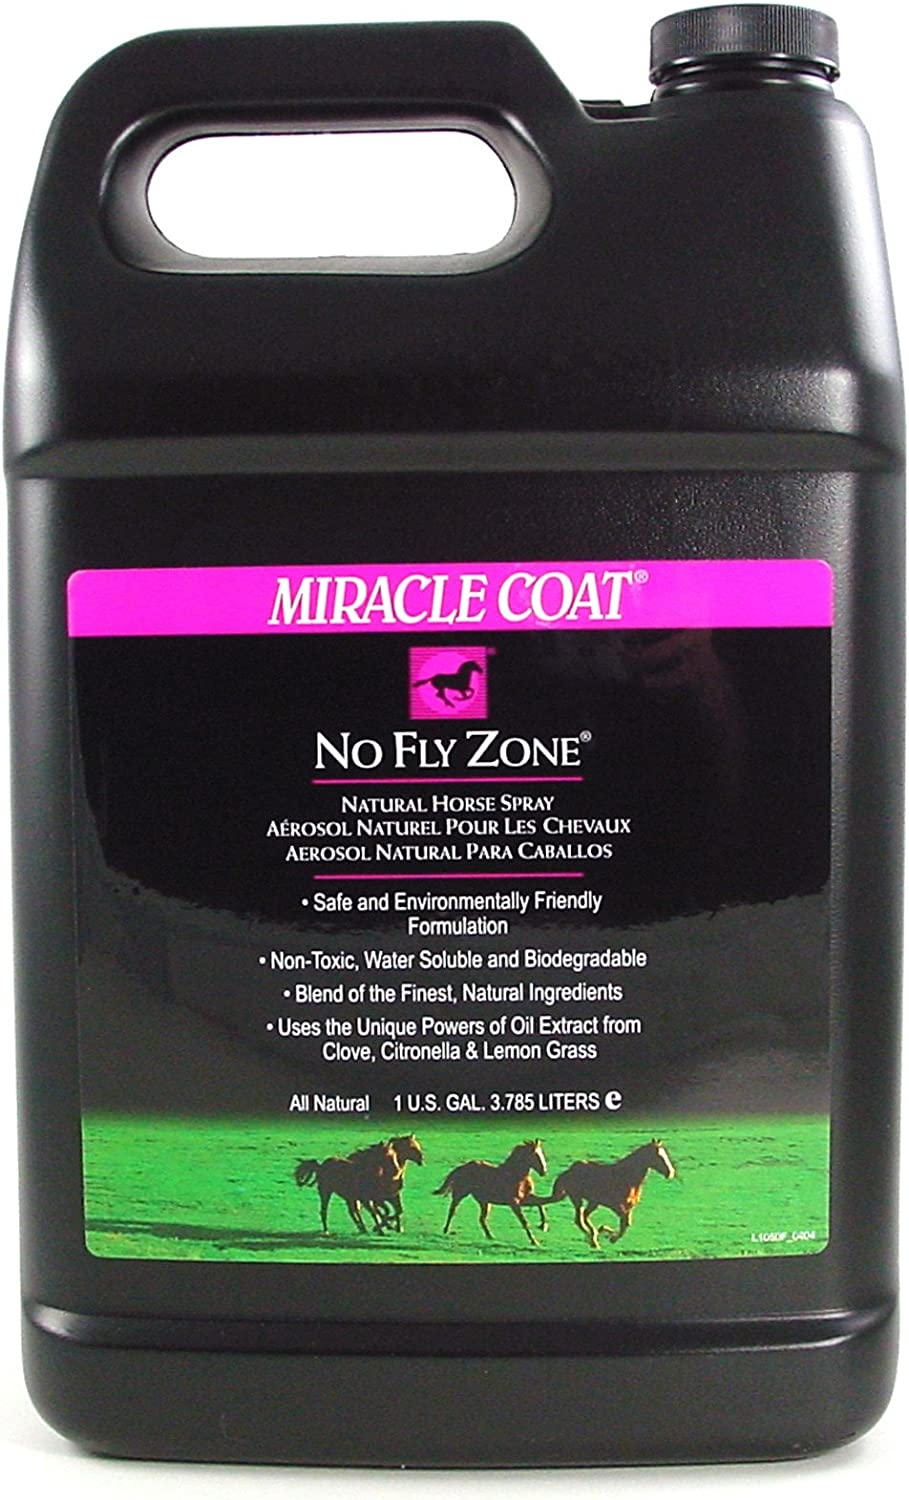 Miracle Coat No Fly Zone for Horses, 1 Gallon